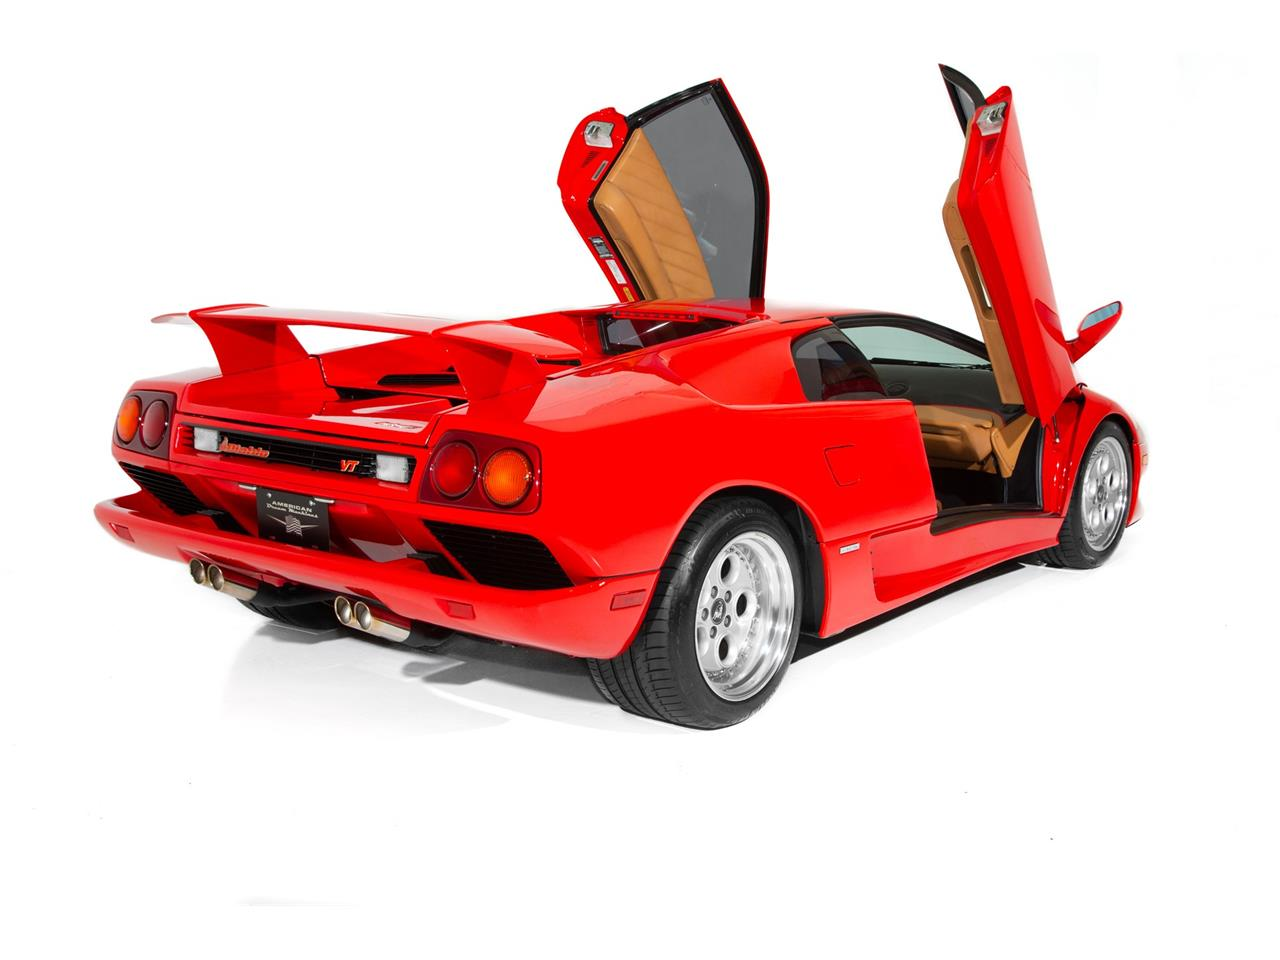 1995 Lamborghini Diablo for sale in Des Moines, IA – photo 17